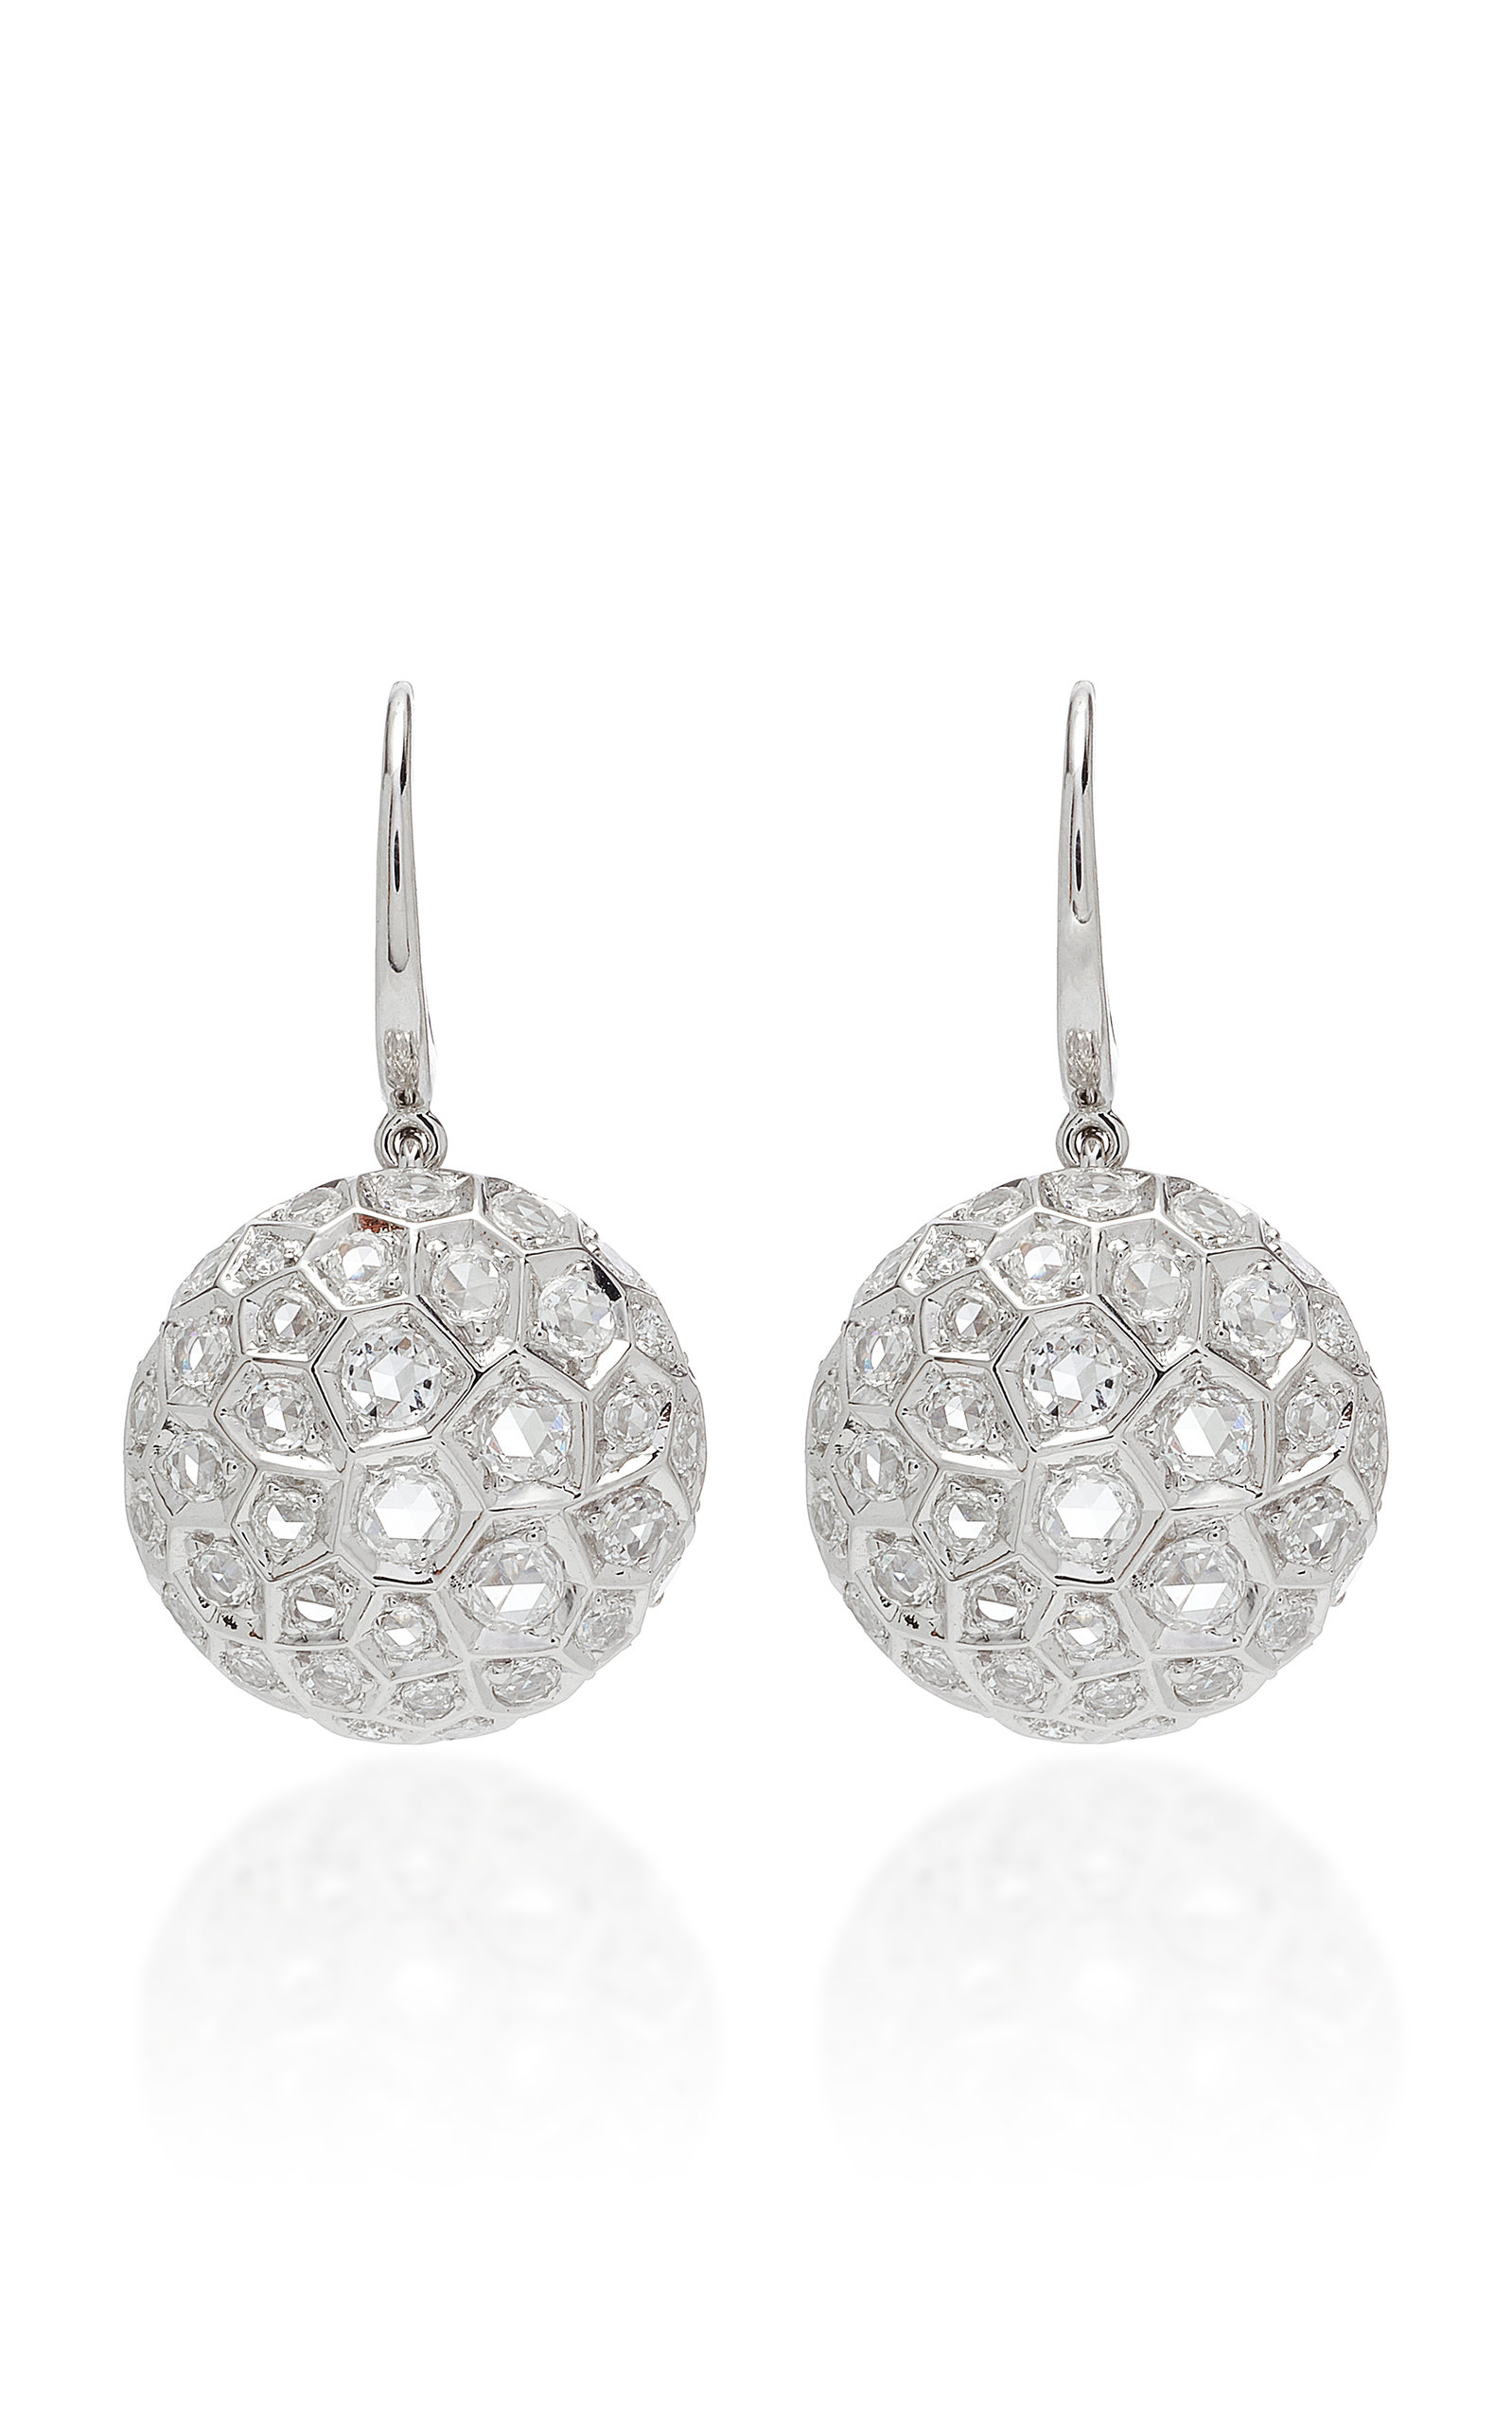 SIDNEY GARBER Honeycomb 18K White Gold And Diamond Drop Earrings